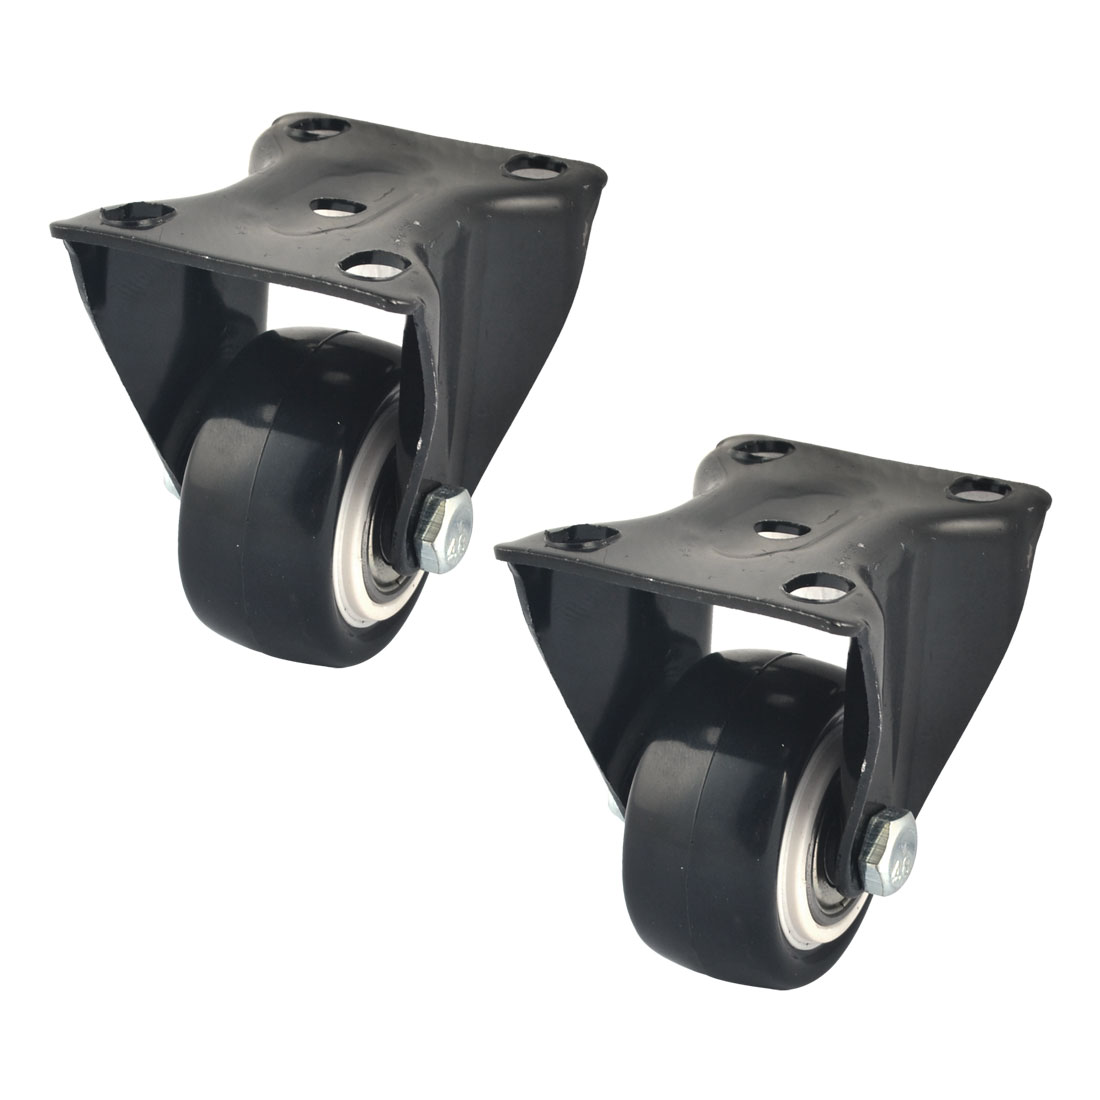 Nylon Roller Metal Rectangle Mounted Top Plate Caster Wheels 41mm Dia Black 2pcs